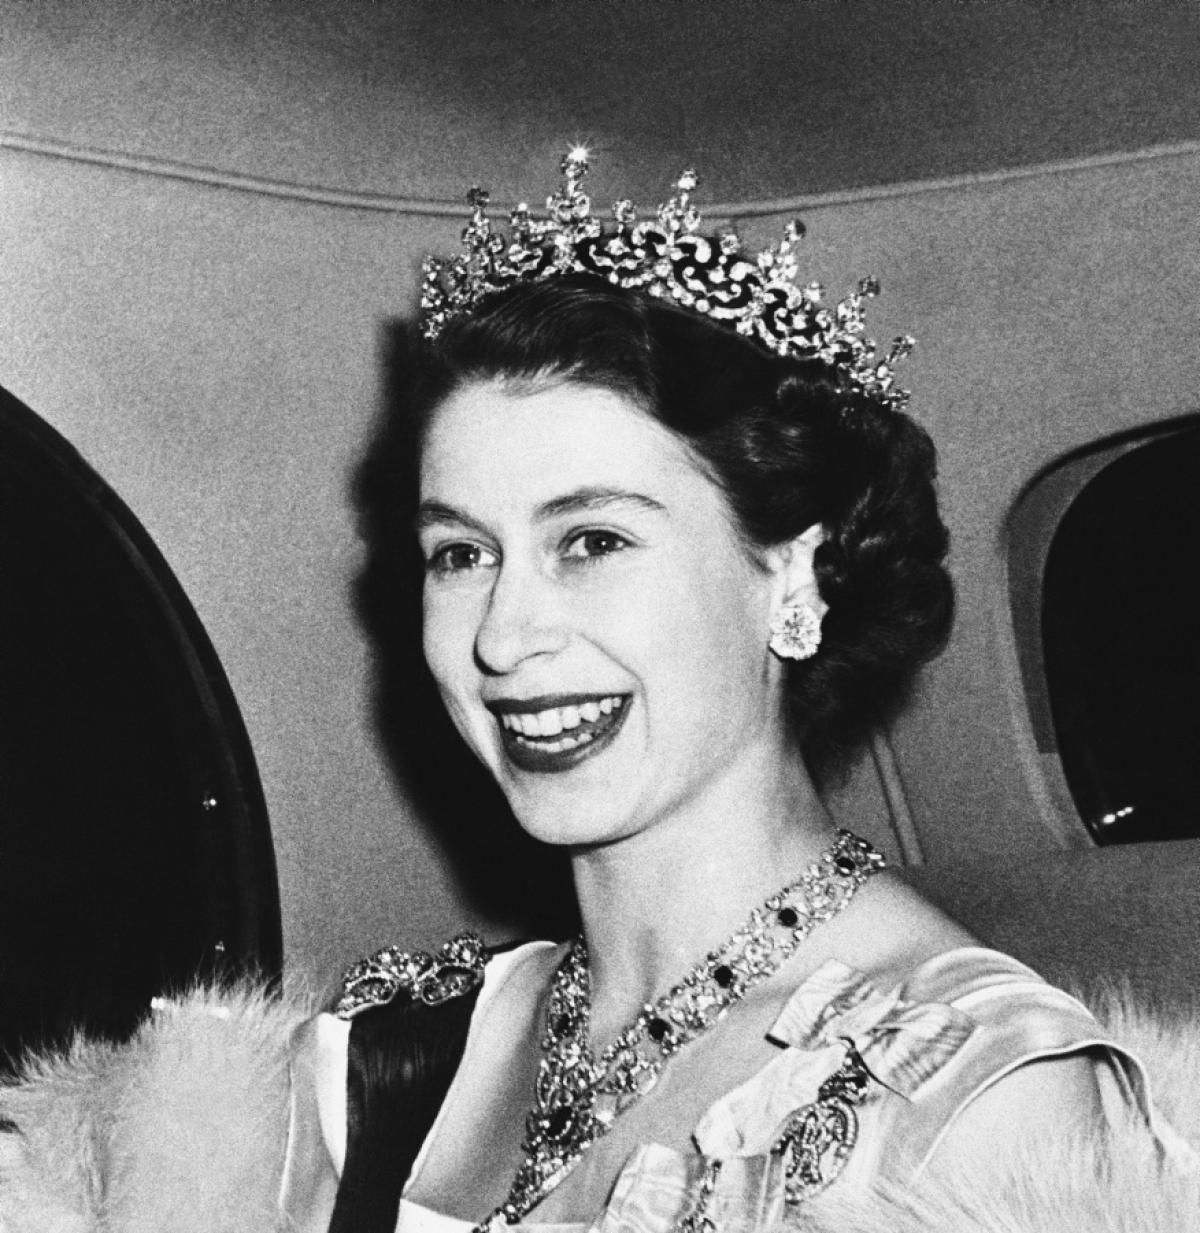 Queen Elizabeth Ii 1950 Photos The Life And Reign Of Queen